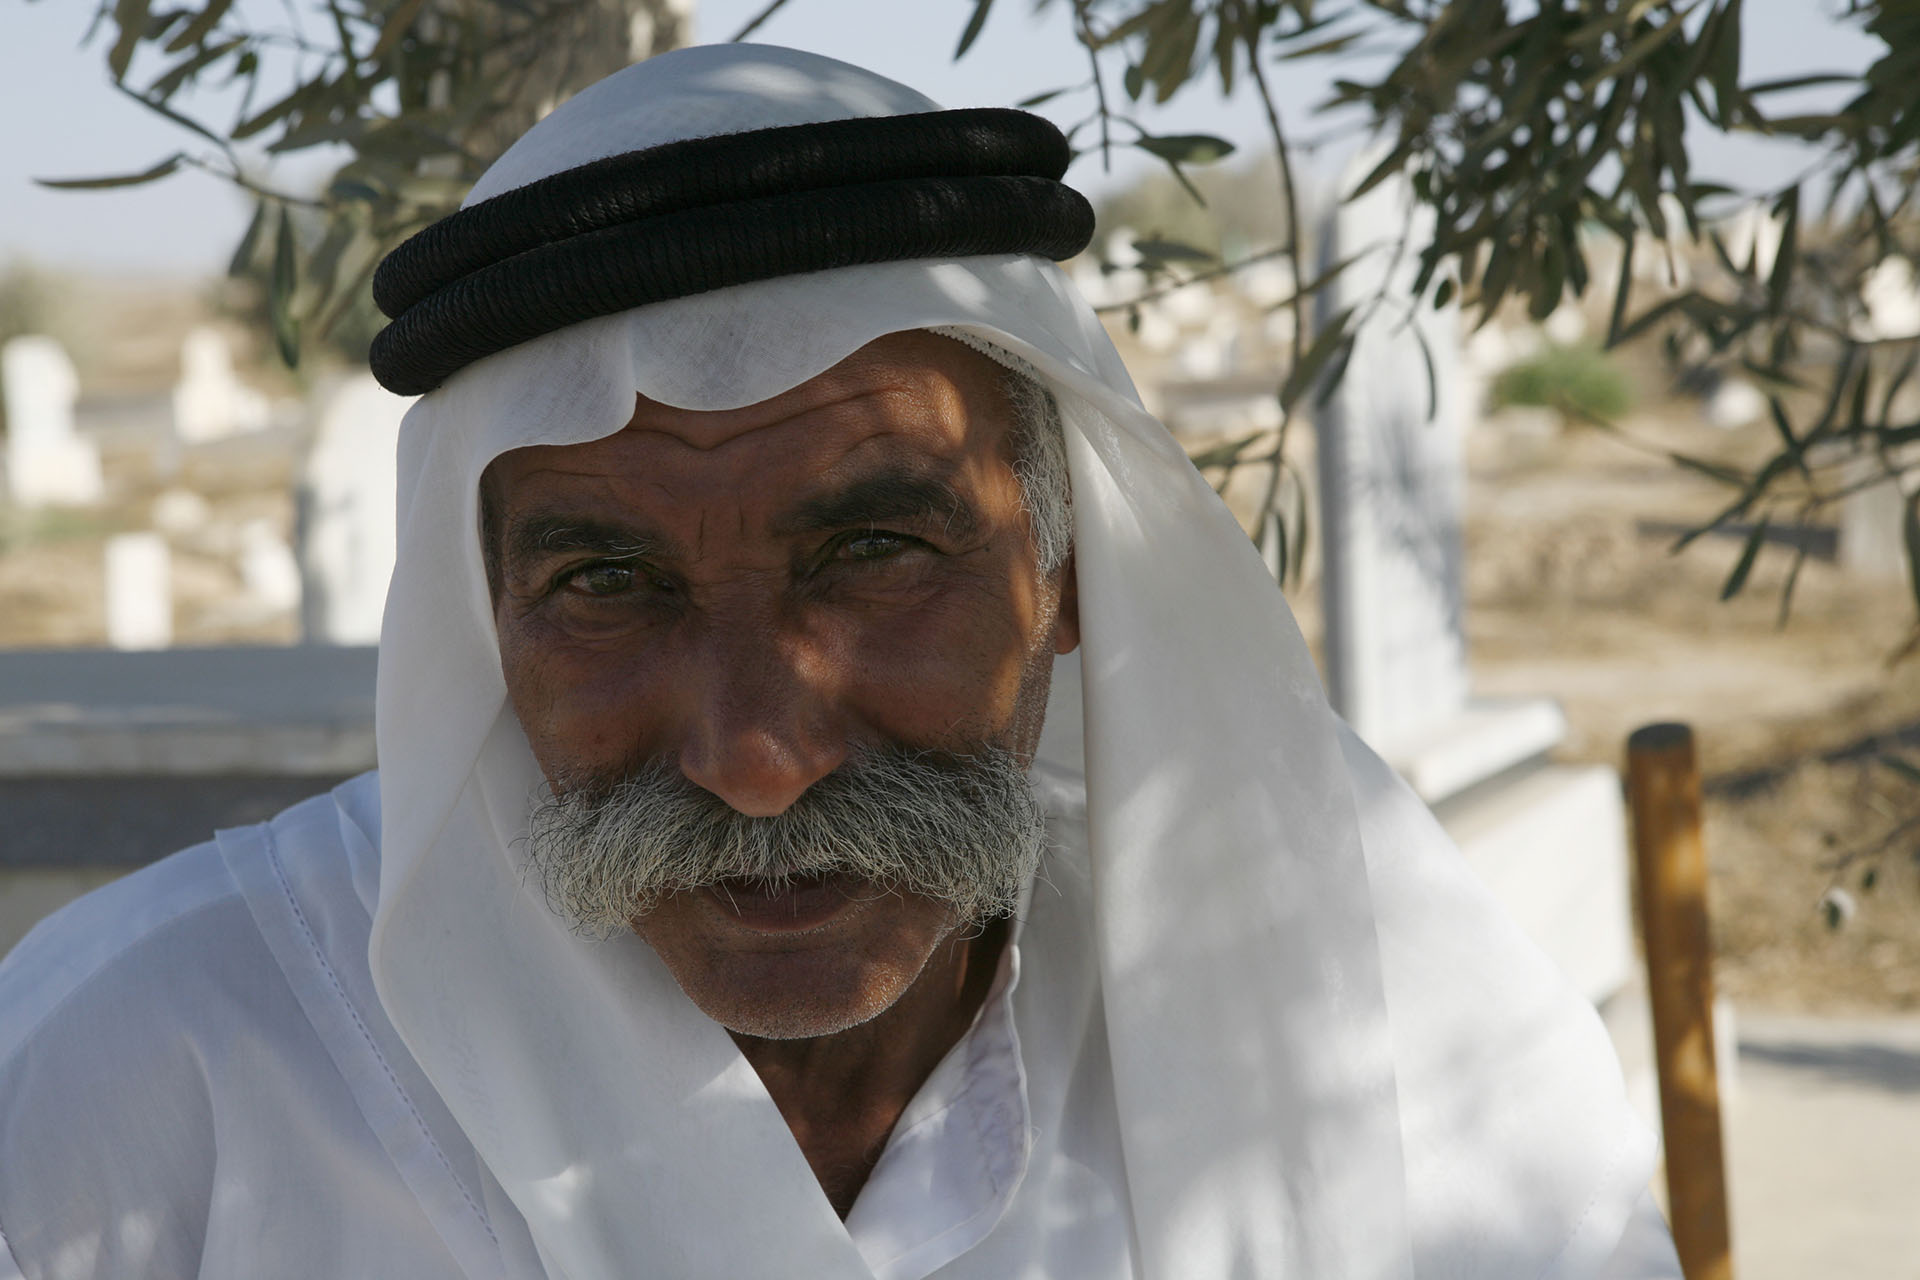 Sheikh Sayah Al Turi. 'We will not move' he said in 2010. By 2015 the village had been demolished and rebuilt 90 times. Al Araqib, July 2012